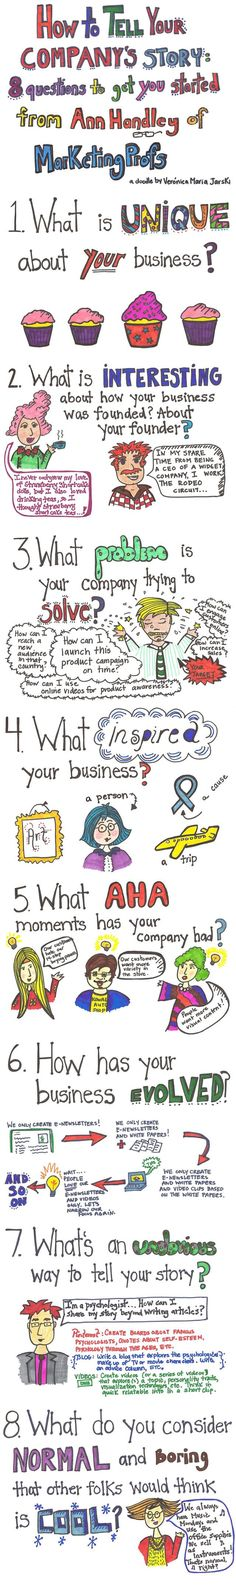 How To Tell Your Company's Story: 8 Questions To Get You Started - #infographic